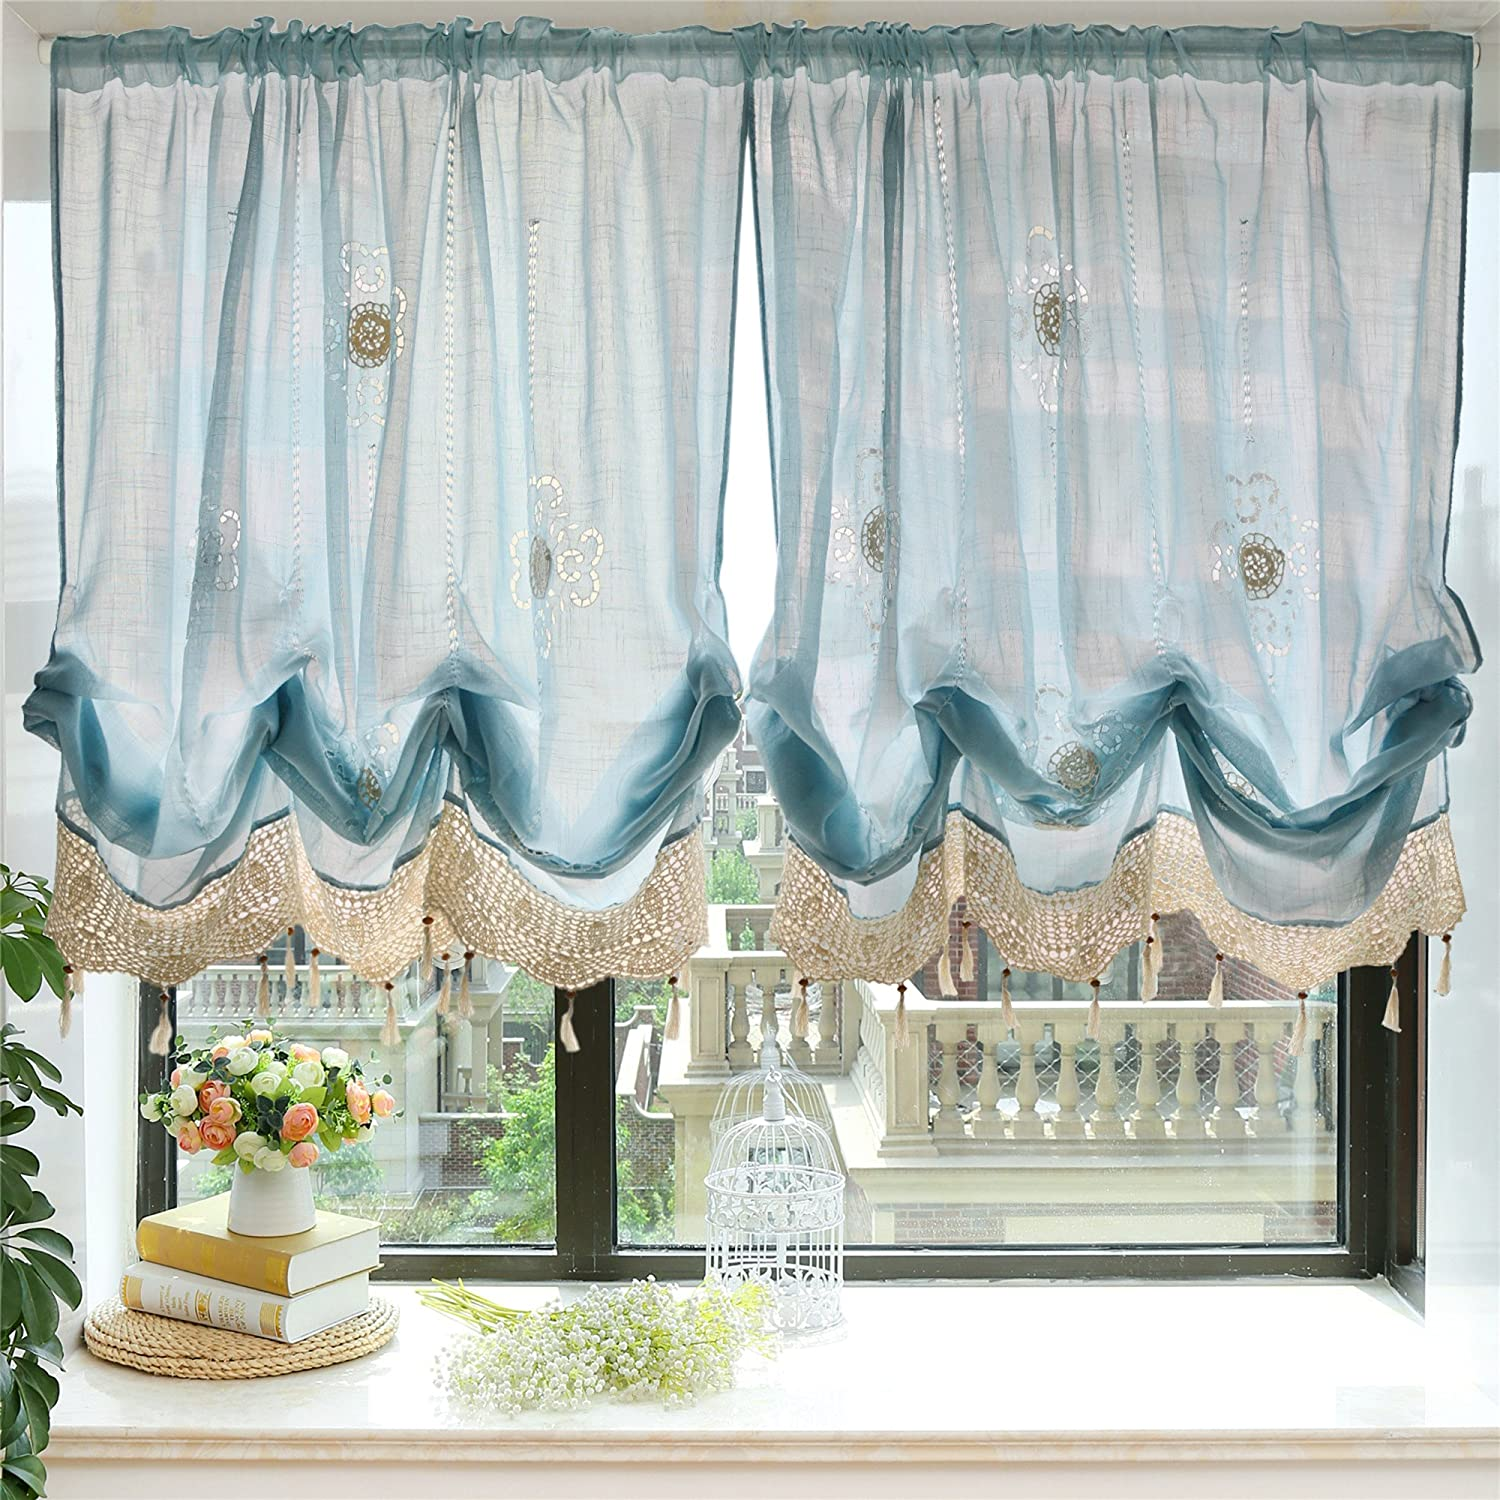 Balloon kitchen curtain